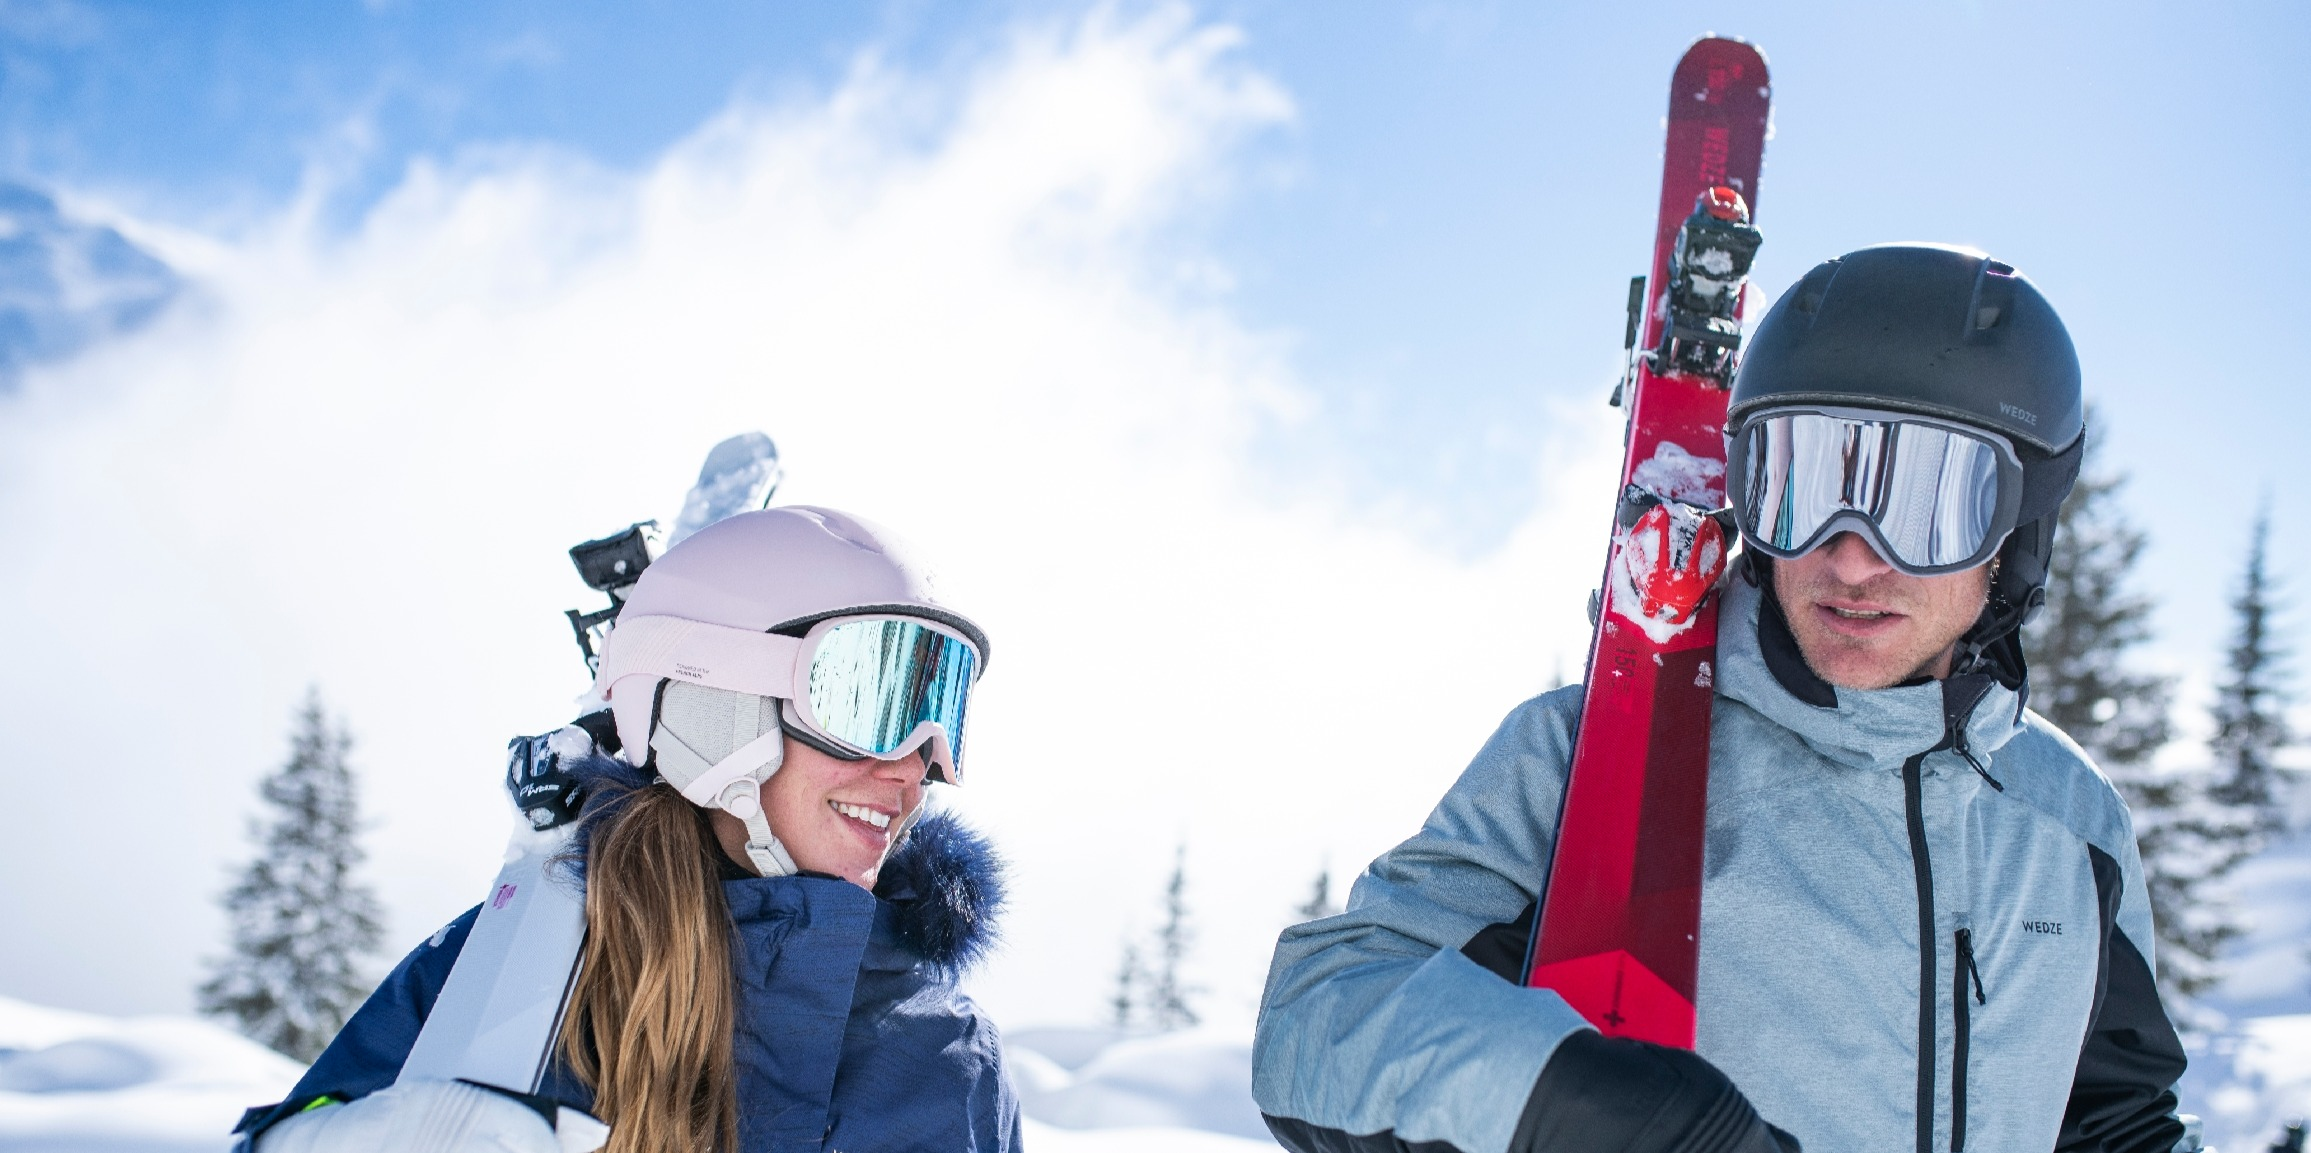 What Kit Do Beginners Need To Go Skiing?